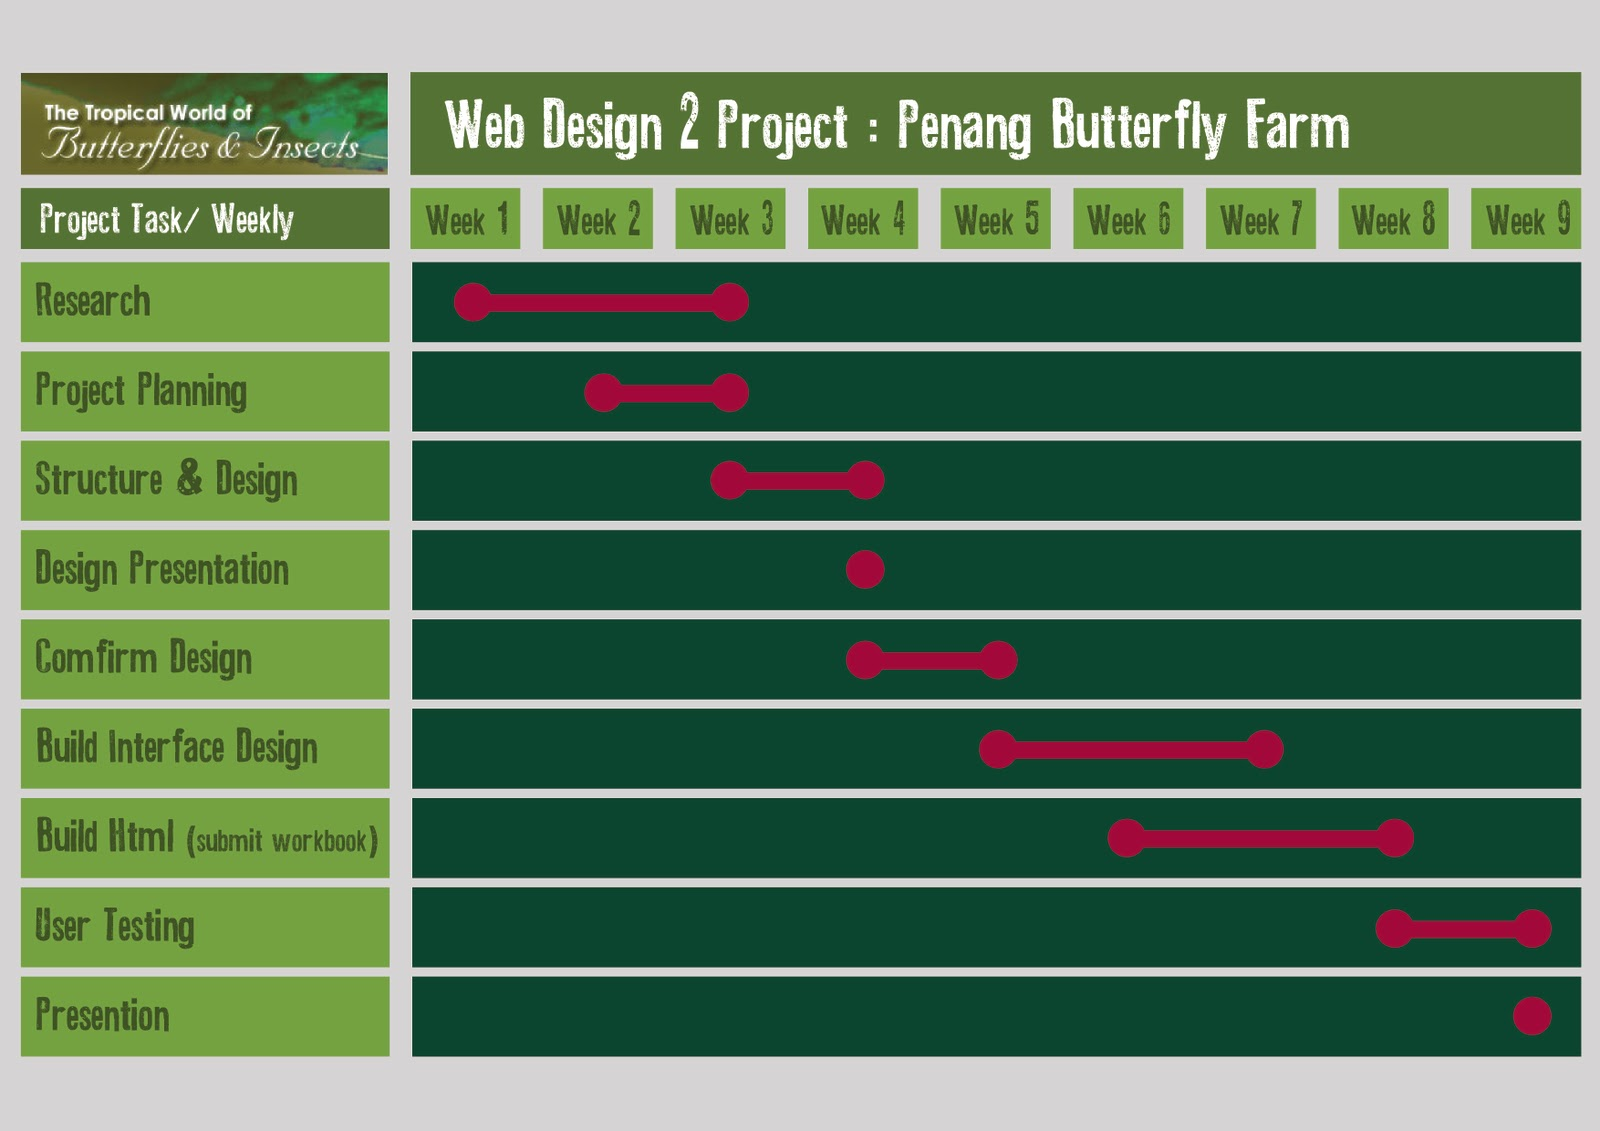 Web design gantt chart choice image free any chart examples unforgotten dreams web design 2 project penang butterfly farm web design 2 project penang butterfly farm nvjuhfo Image collections